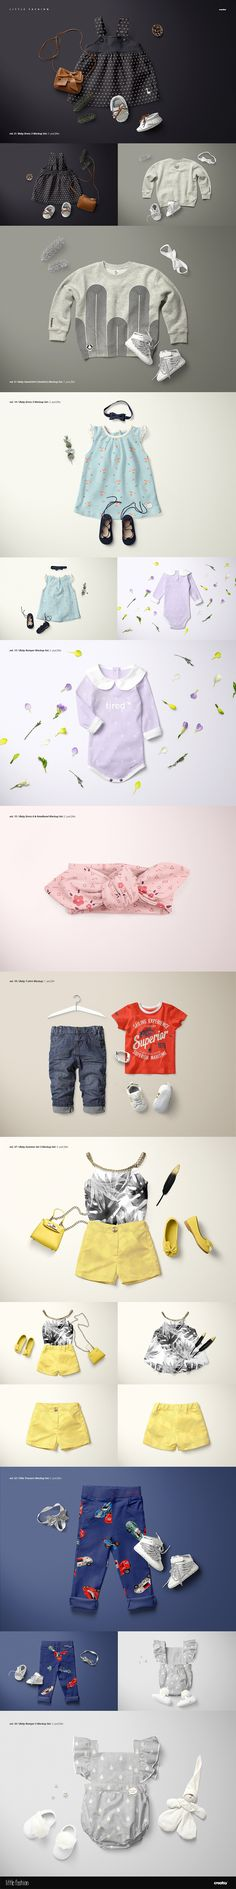 simple homes mockup creator - product mockups template / photo, Template For Children Clothing Presentation, Presentation templates